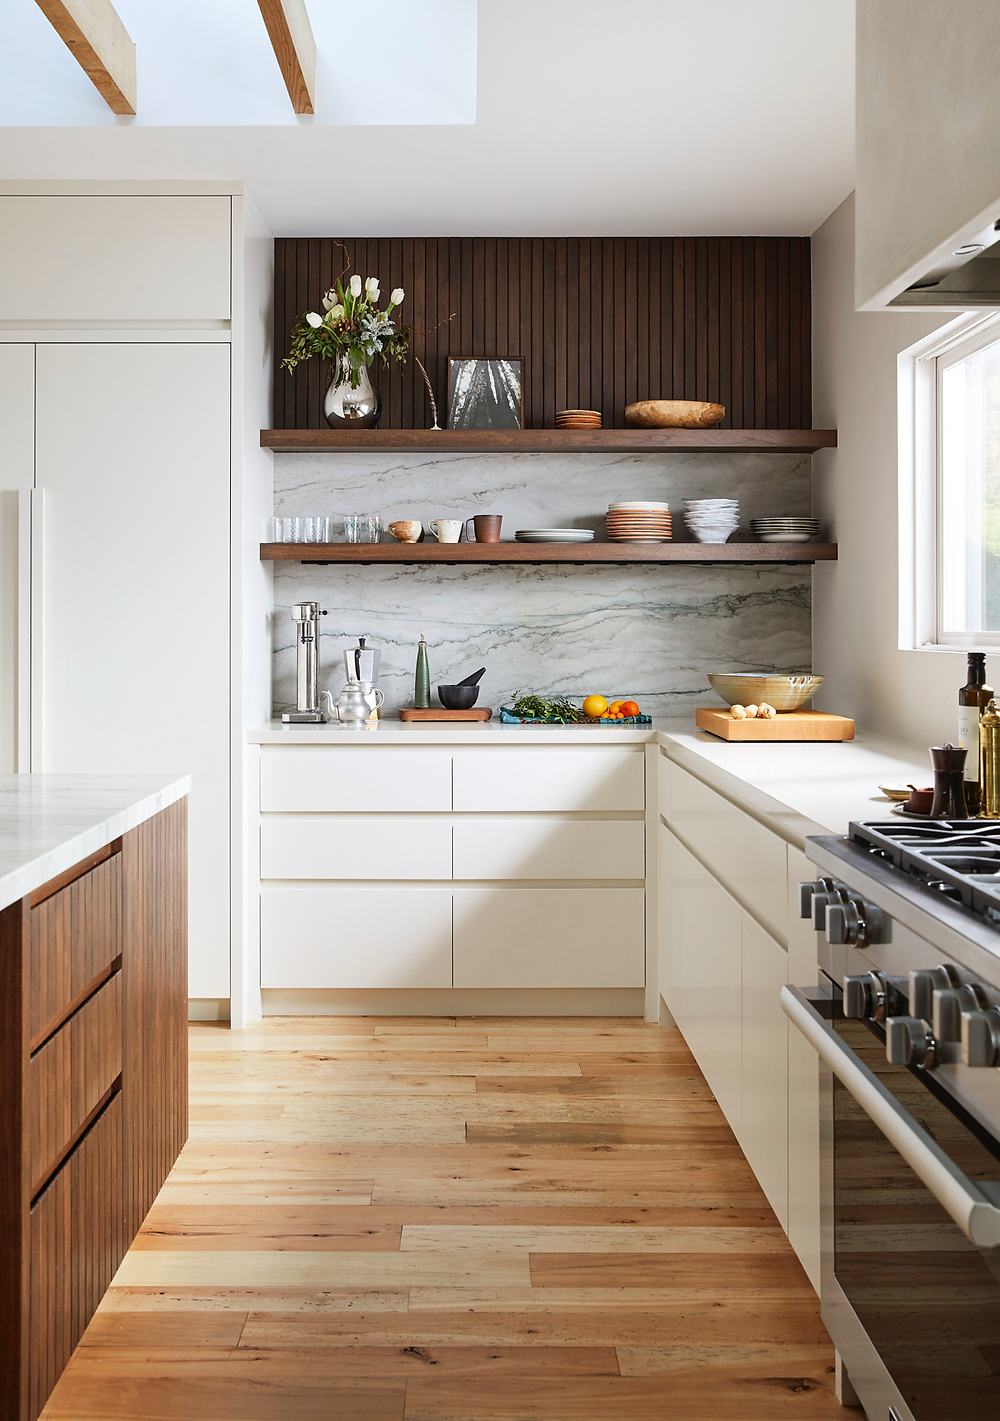 A modern white kitchen with walnut open shelves beautifully styled with dishes and vases.